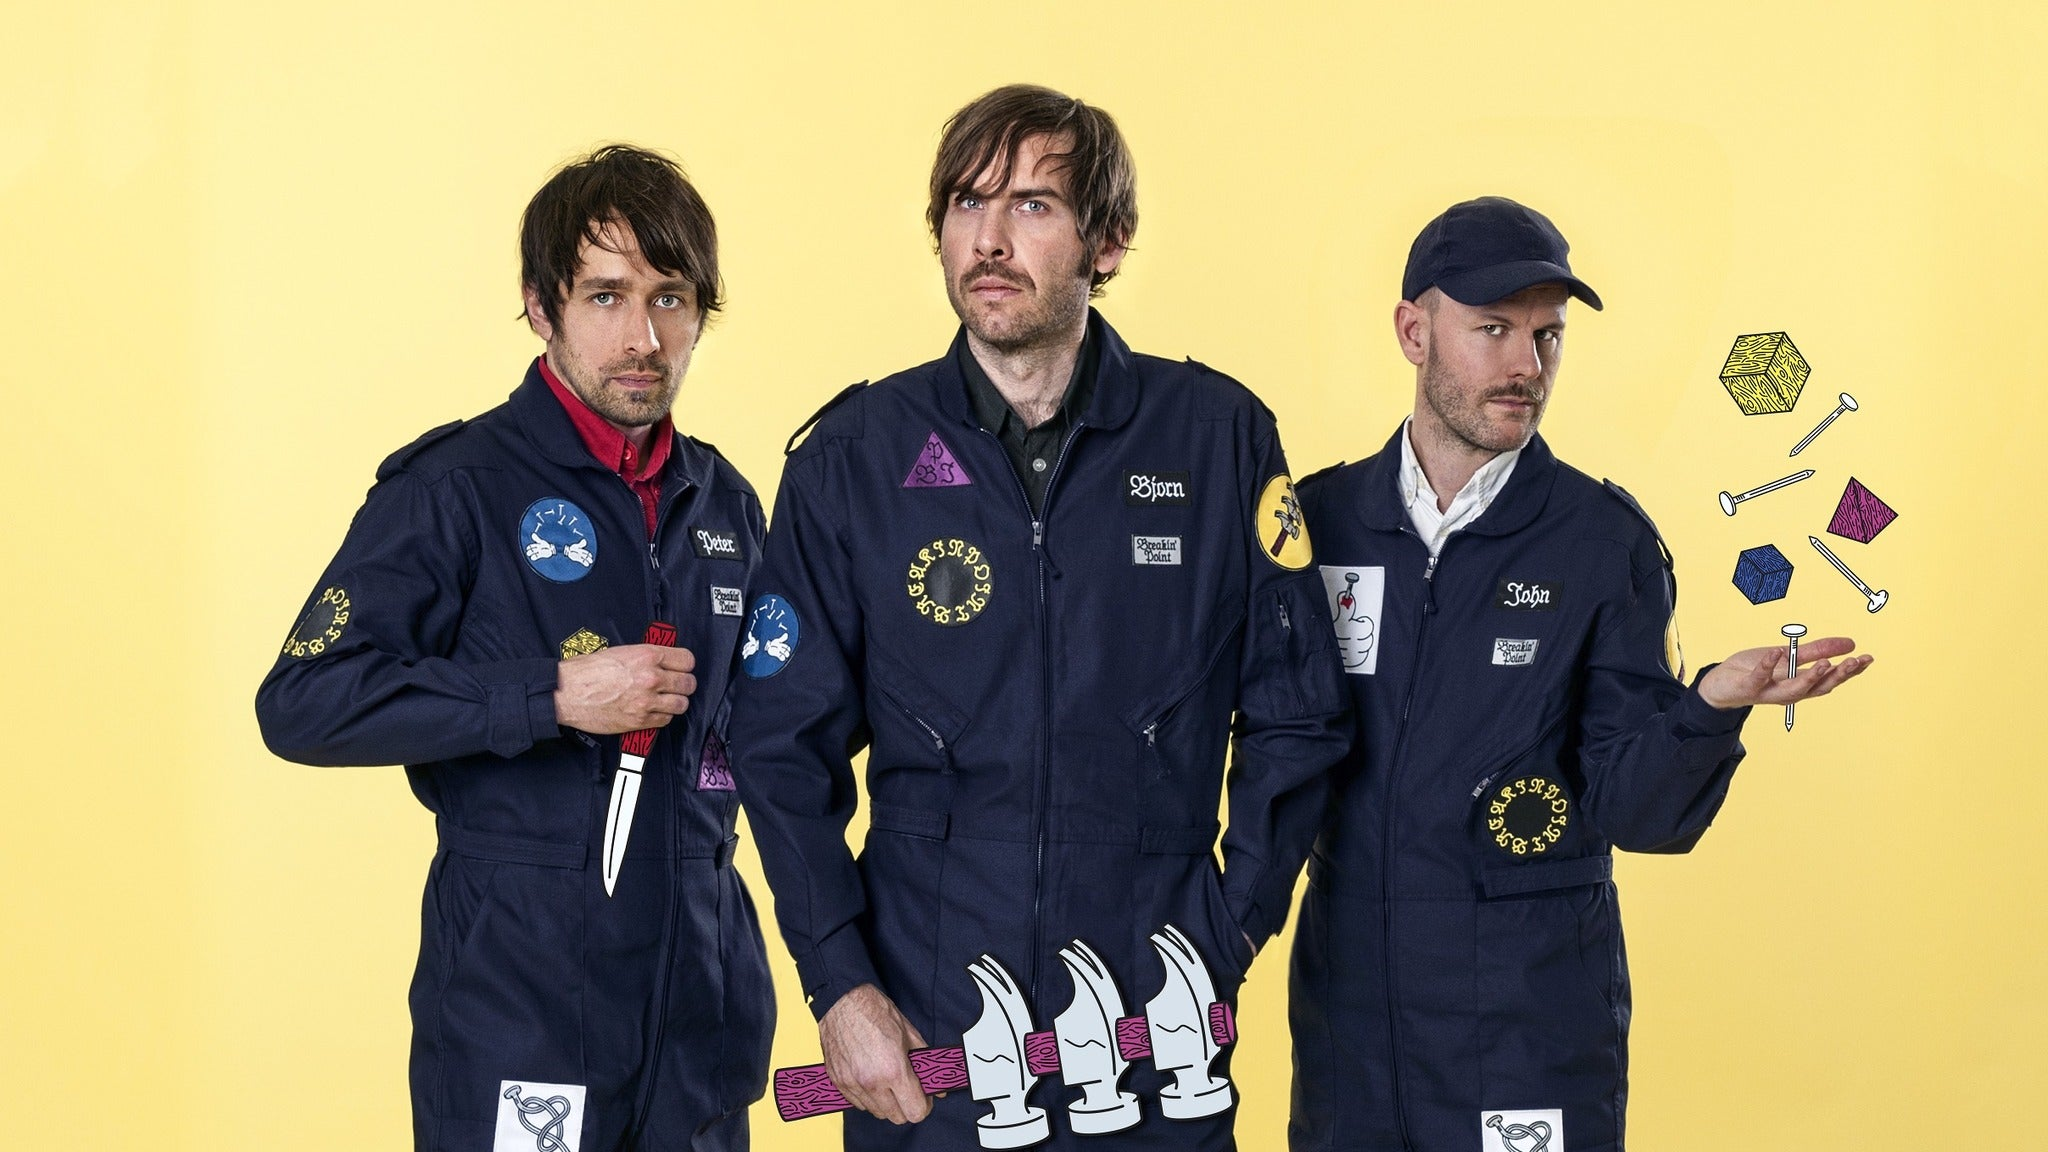 Peter Bjorn and John at Amsterdam Bar & Hall